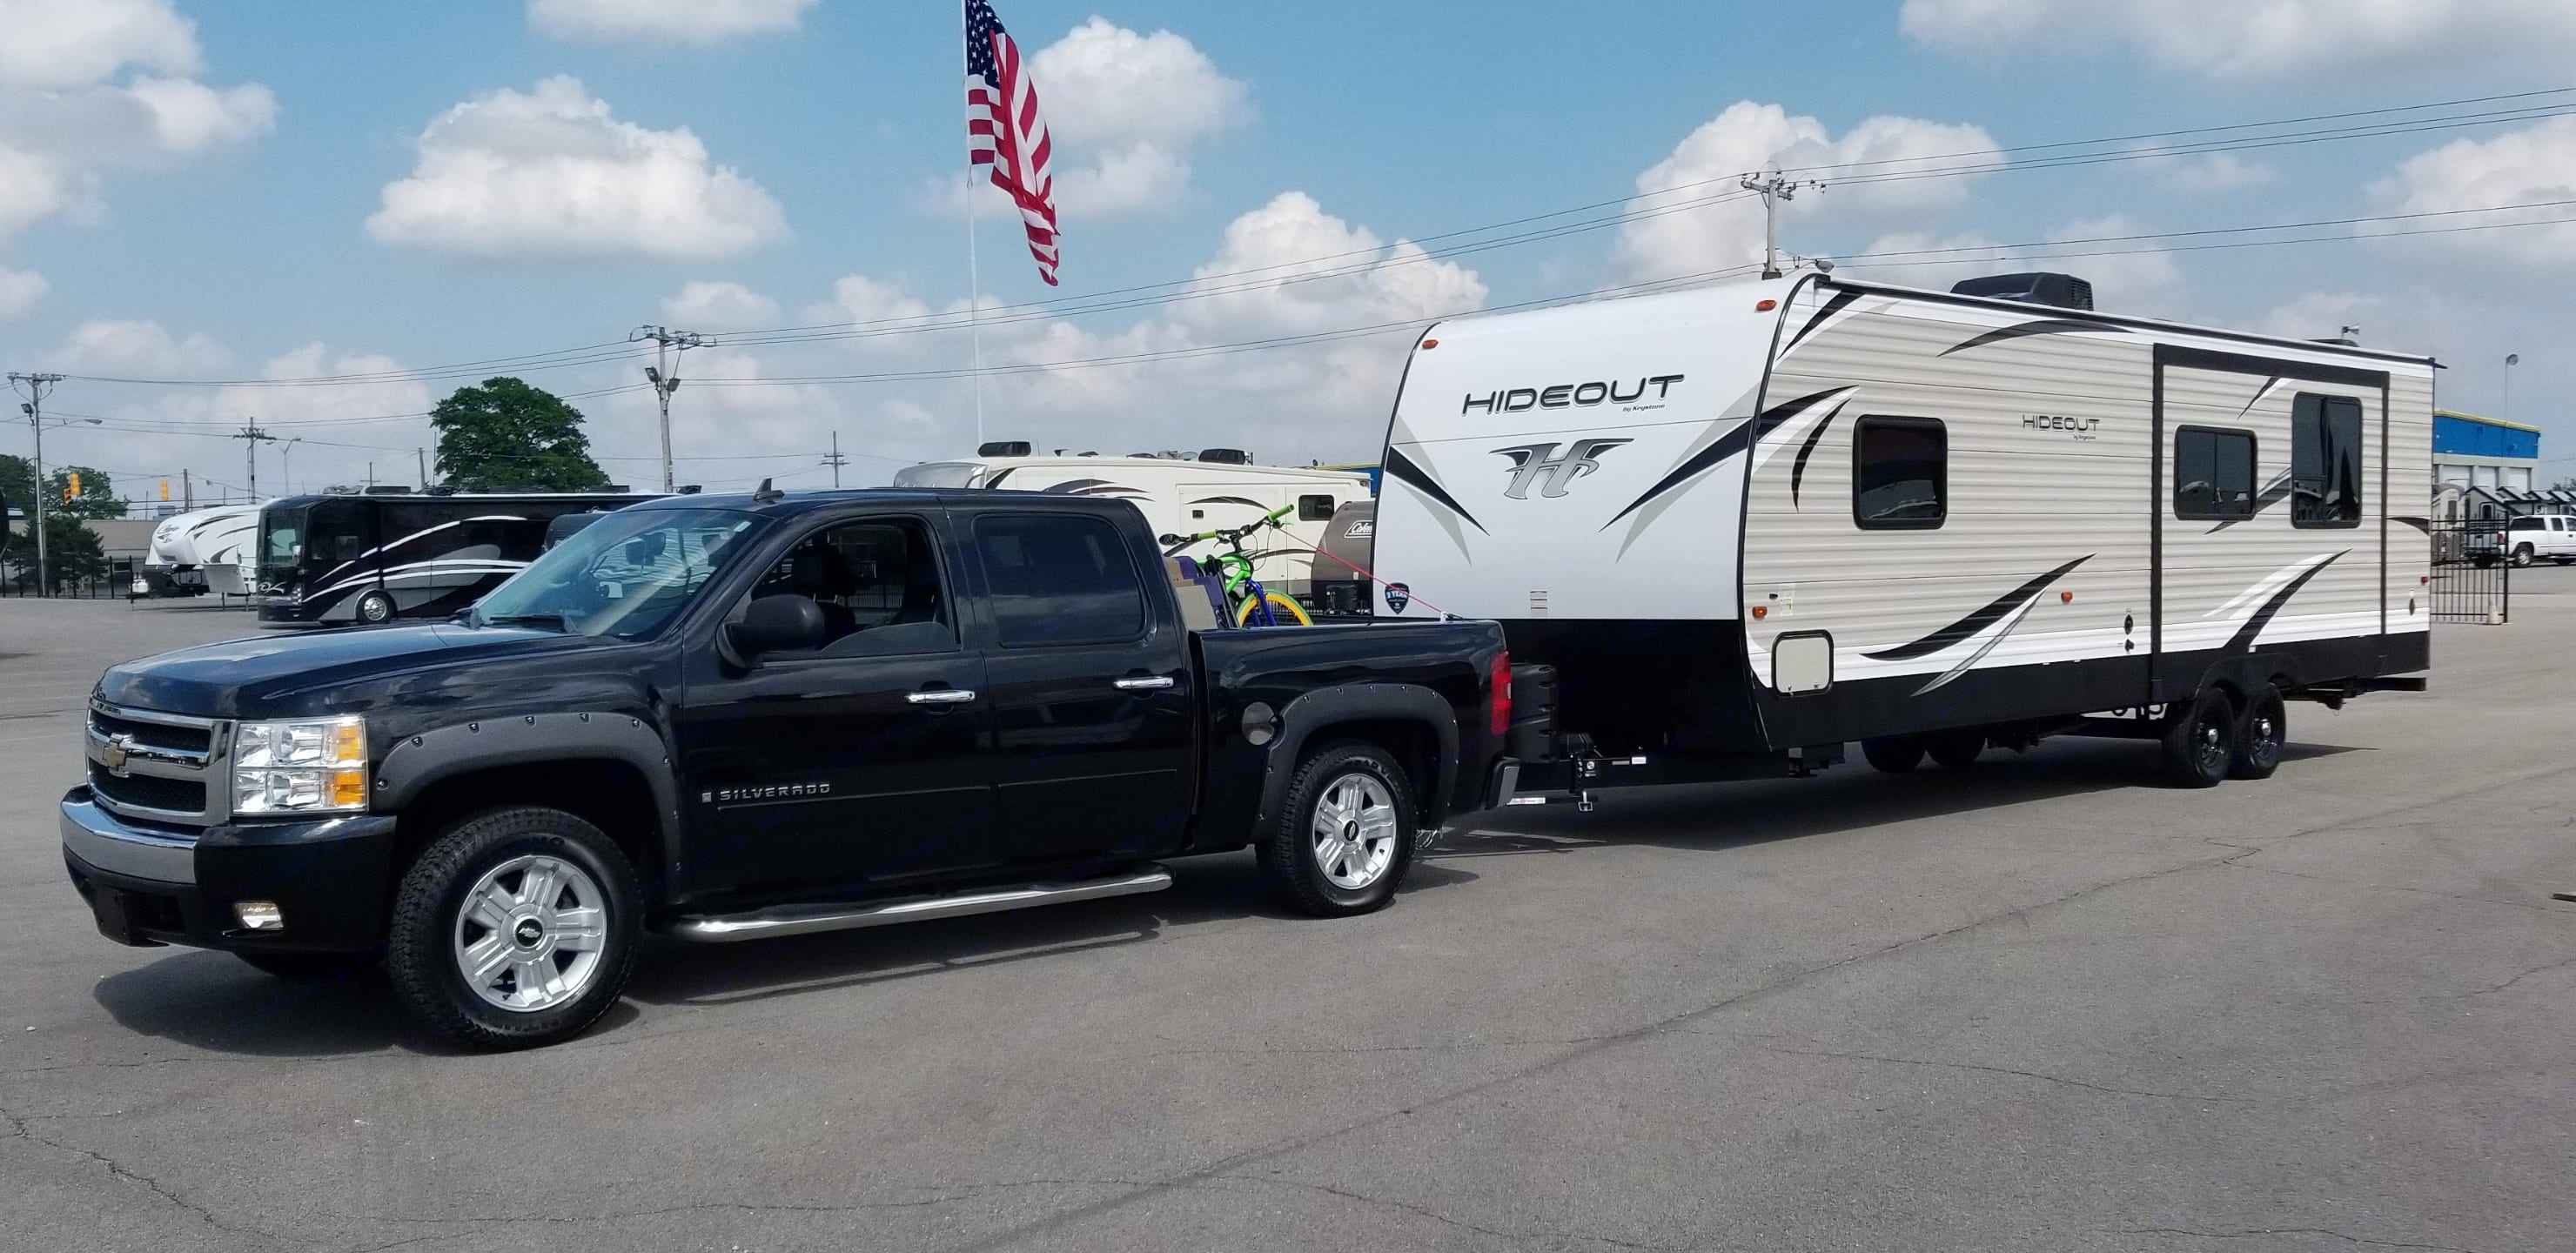 When you show up in this rig it receives respect. . Keystone Hideout 28RKS 2018